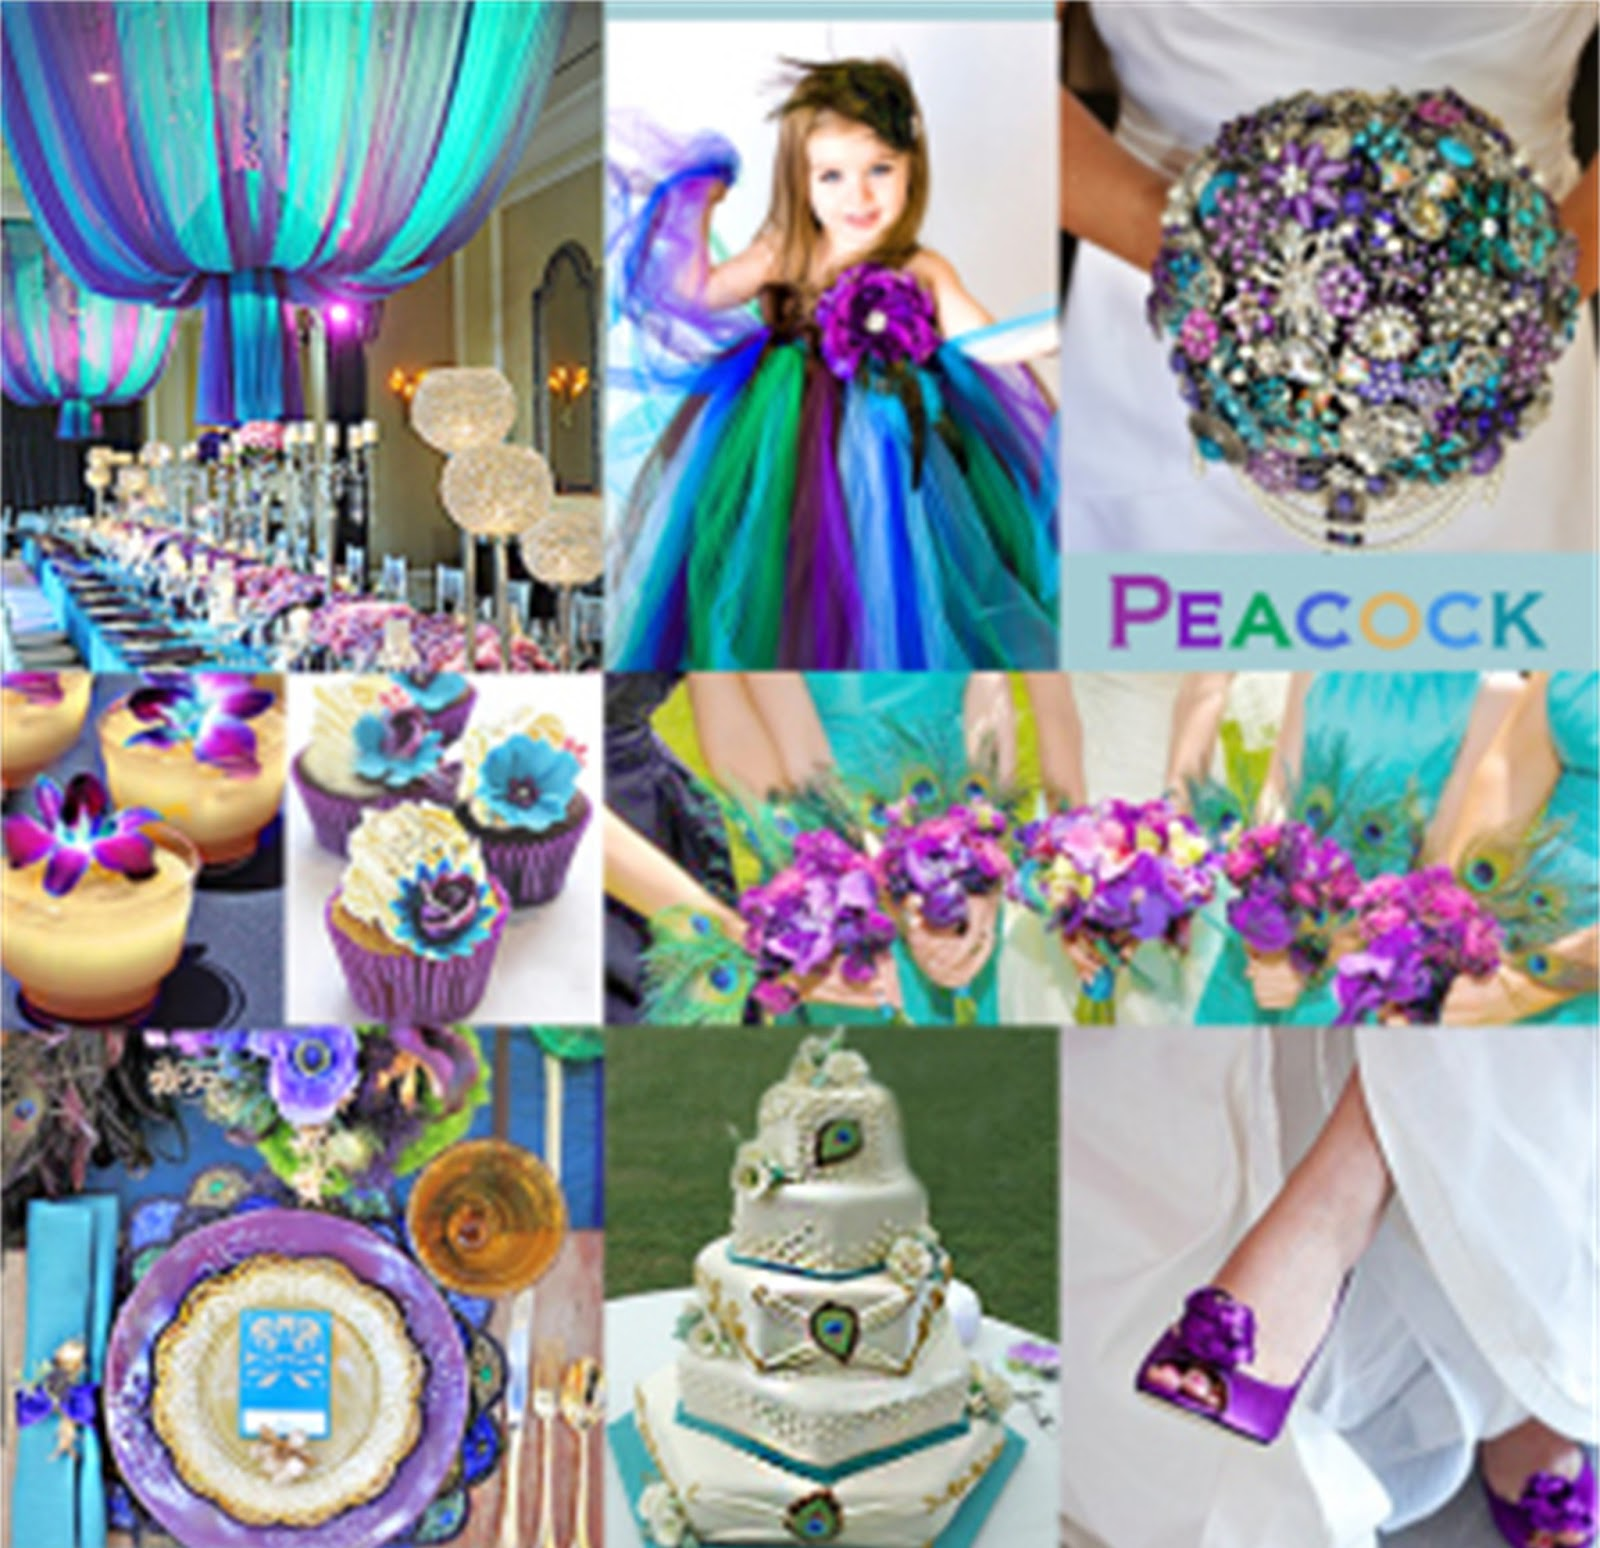 Wedding Themes And Colors: Angee's Eventions: Peacock Themed Wedding